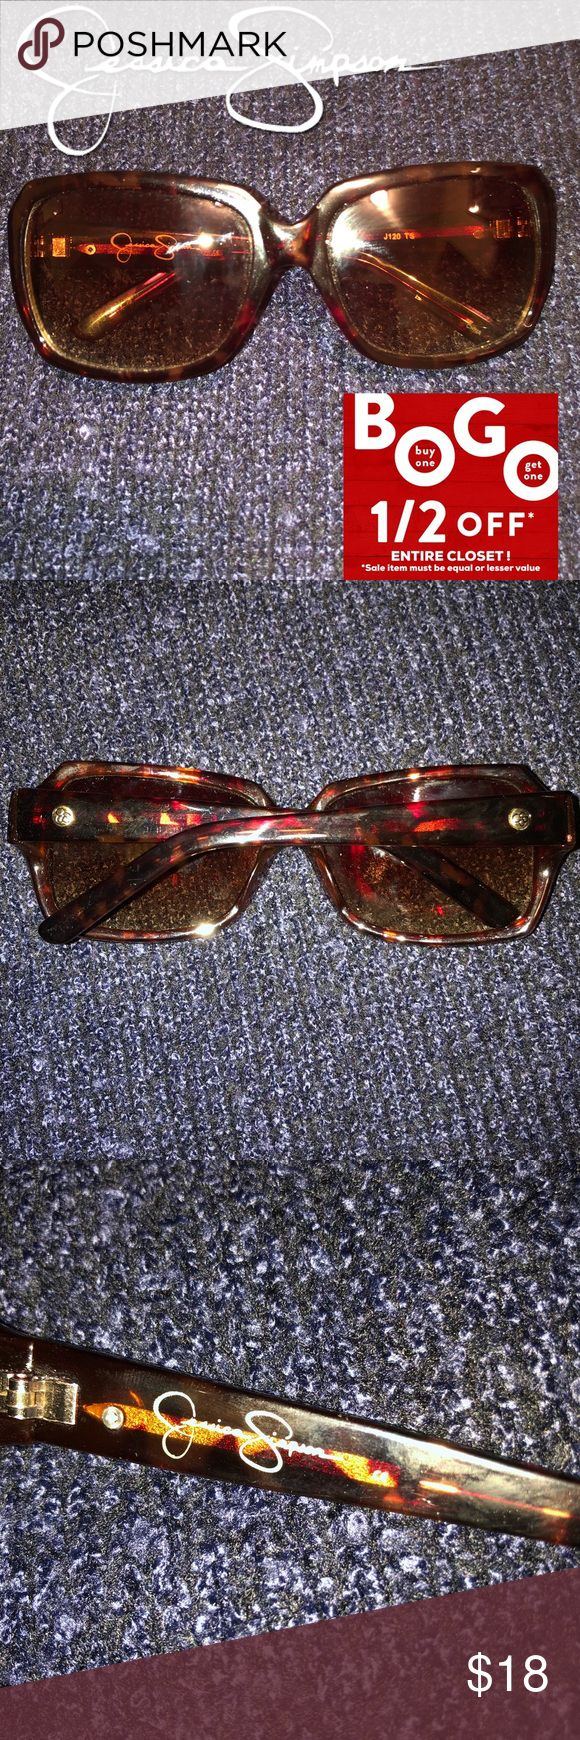 Jessica Simpson Women Brown Tortoise Sunglasses Purchased to wear but never did! NWOT! No case but will provide a dust bag for storage. Jessica Simpson brown tortoise Sunglasses with brown tint. Great price for a chic pair of Sunnies!! Jessica Simpson Accessories Sunglasses